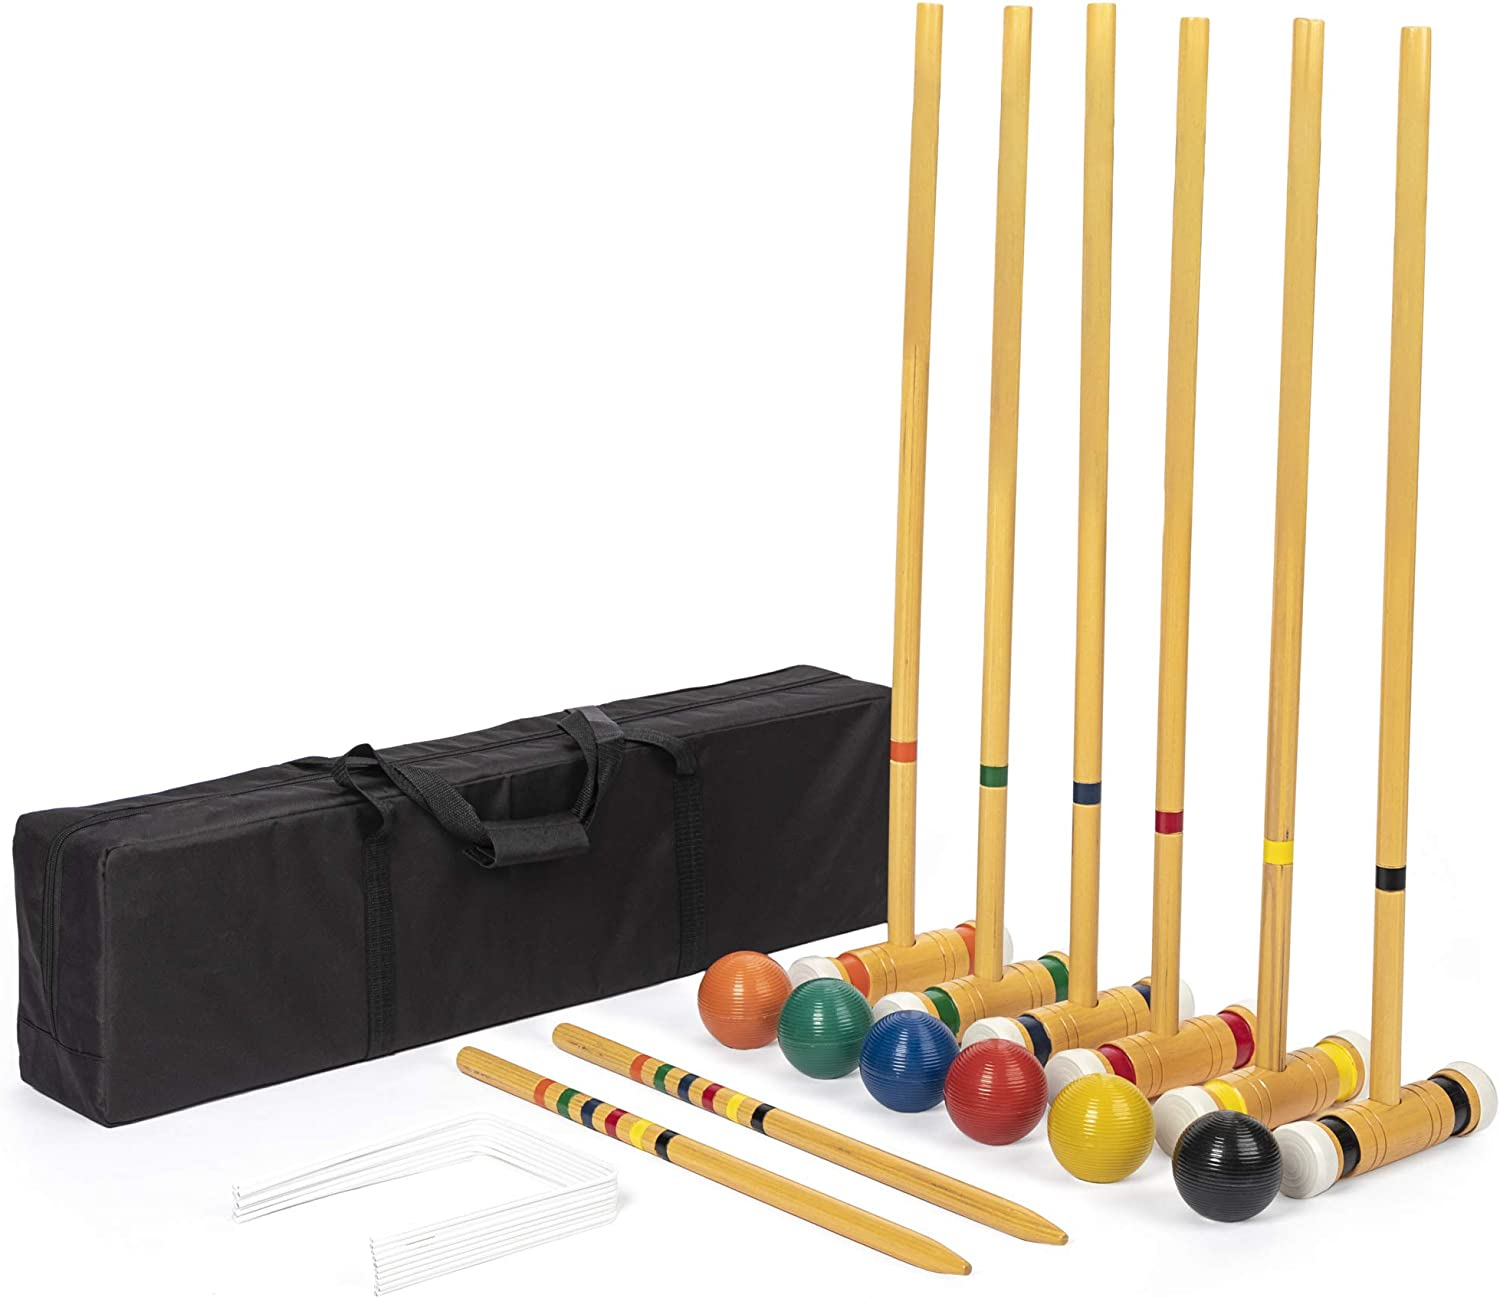 Six-Player Deluxe Croquet Set with Rapid rise Colored Wooden Balls Mallets Award